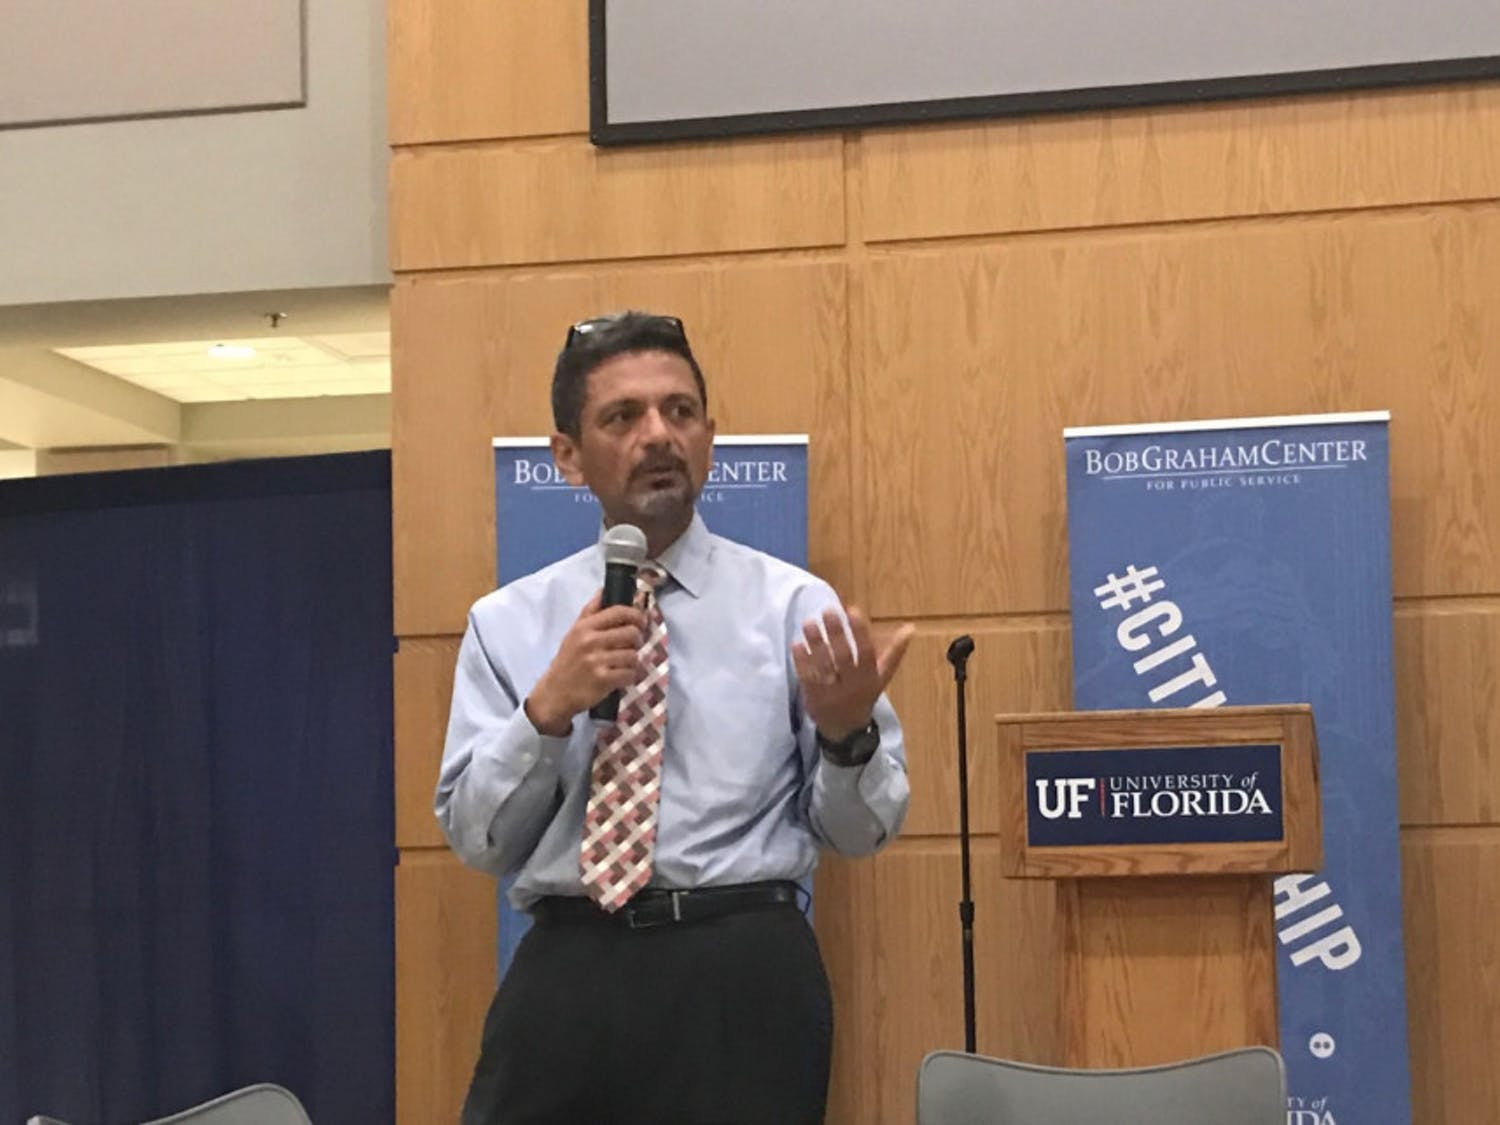 UF Chief Diversity Officer Antonio Farias met with about 35 students in Pugh Hall Tuesday night to talk about the importance of promoting inclusion on campus.